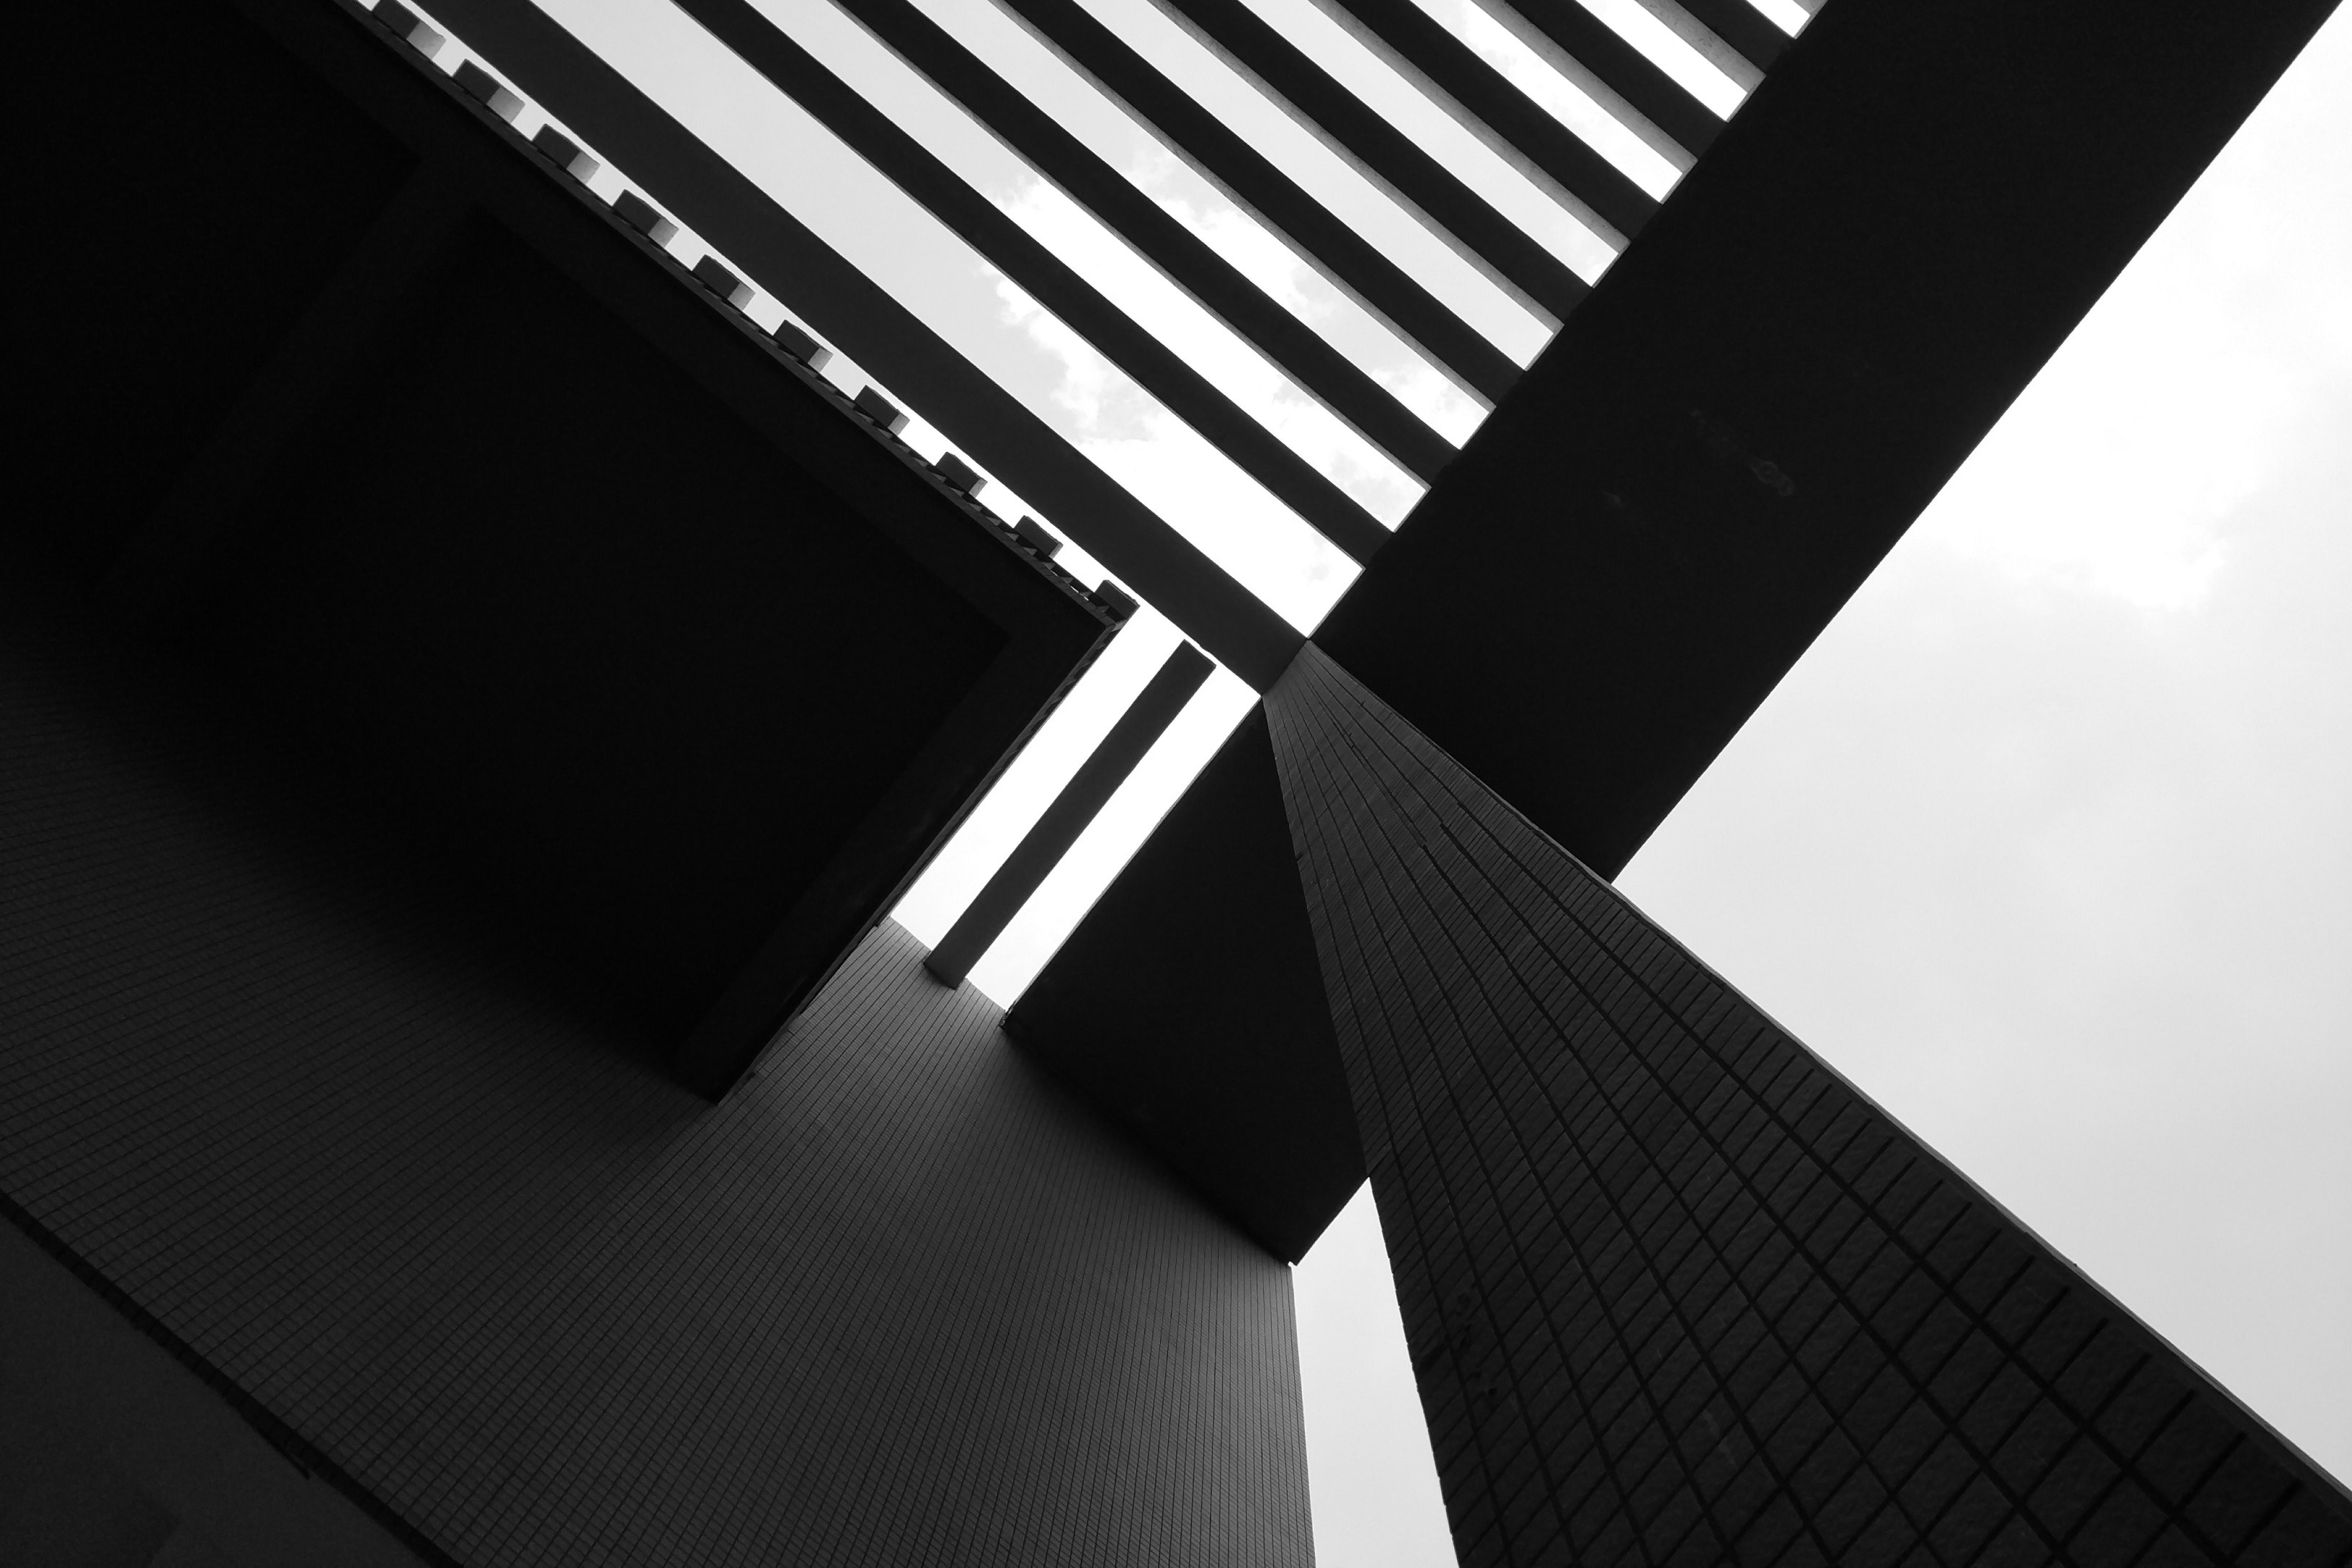 Low-angle shot of a building